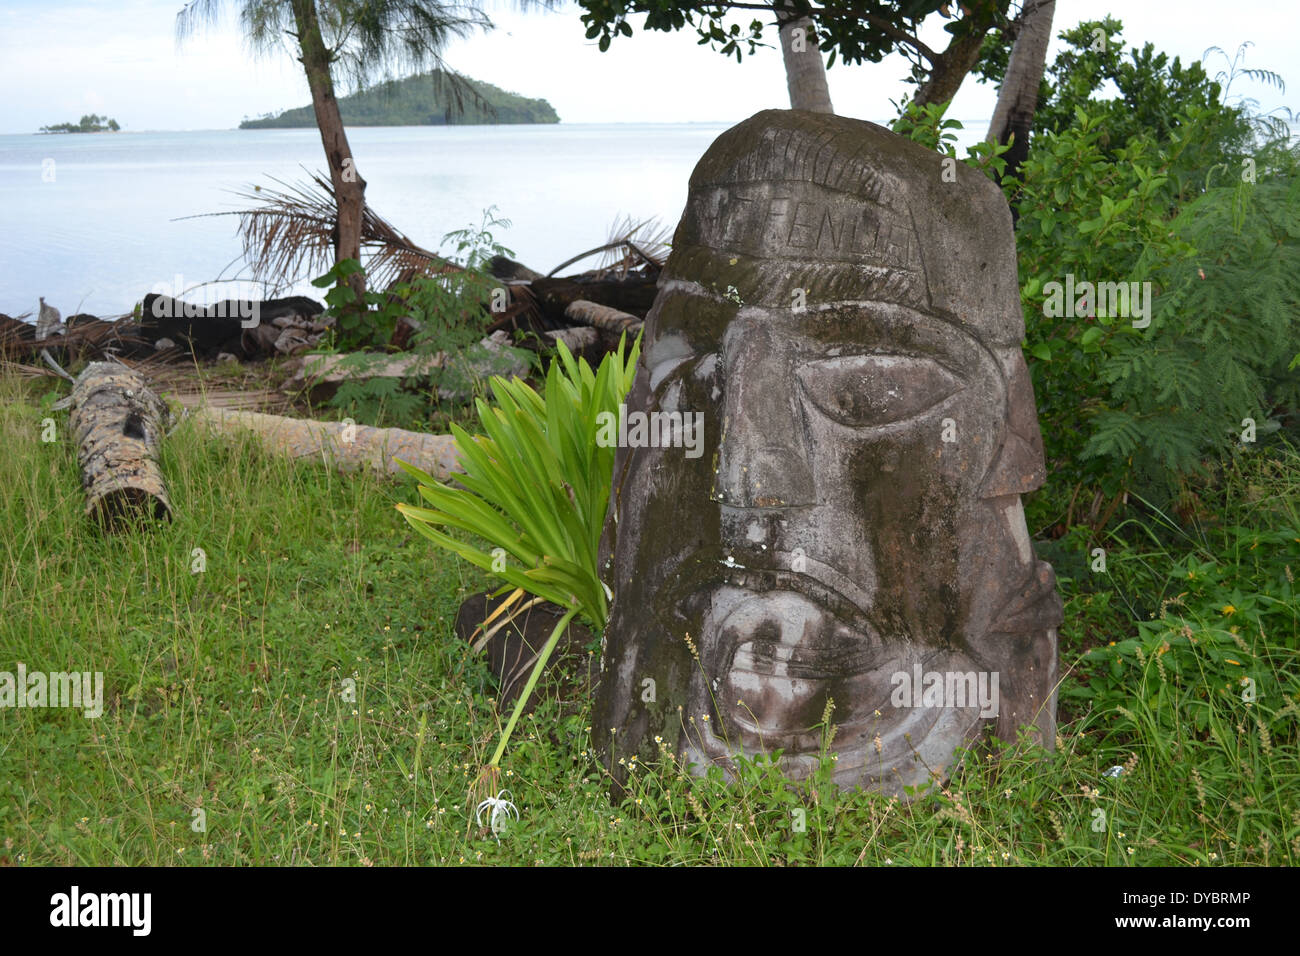 Traditional head sculpture or totem in the coast of Matautu, Wallis Island, Wallis and Futuna, Melanesia, South Pacific - Stock Image